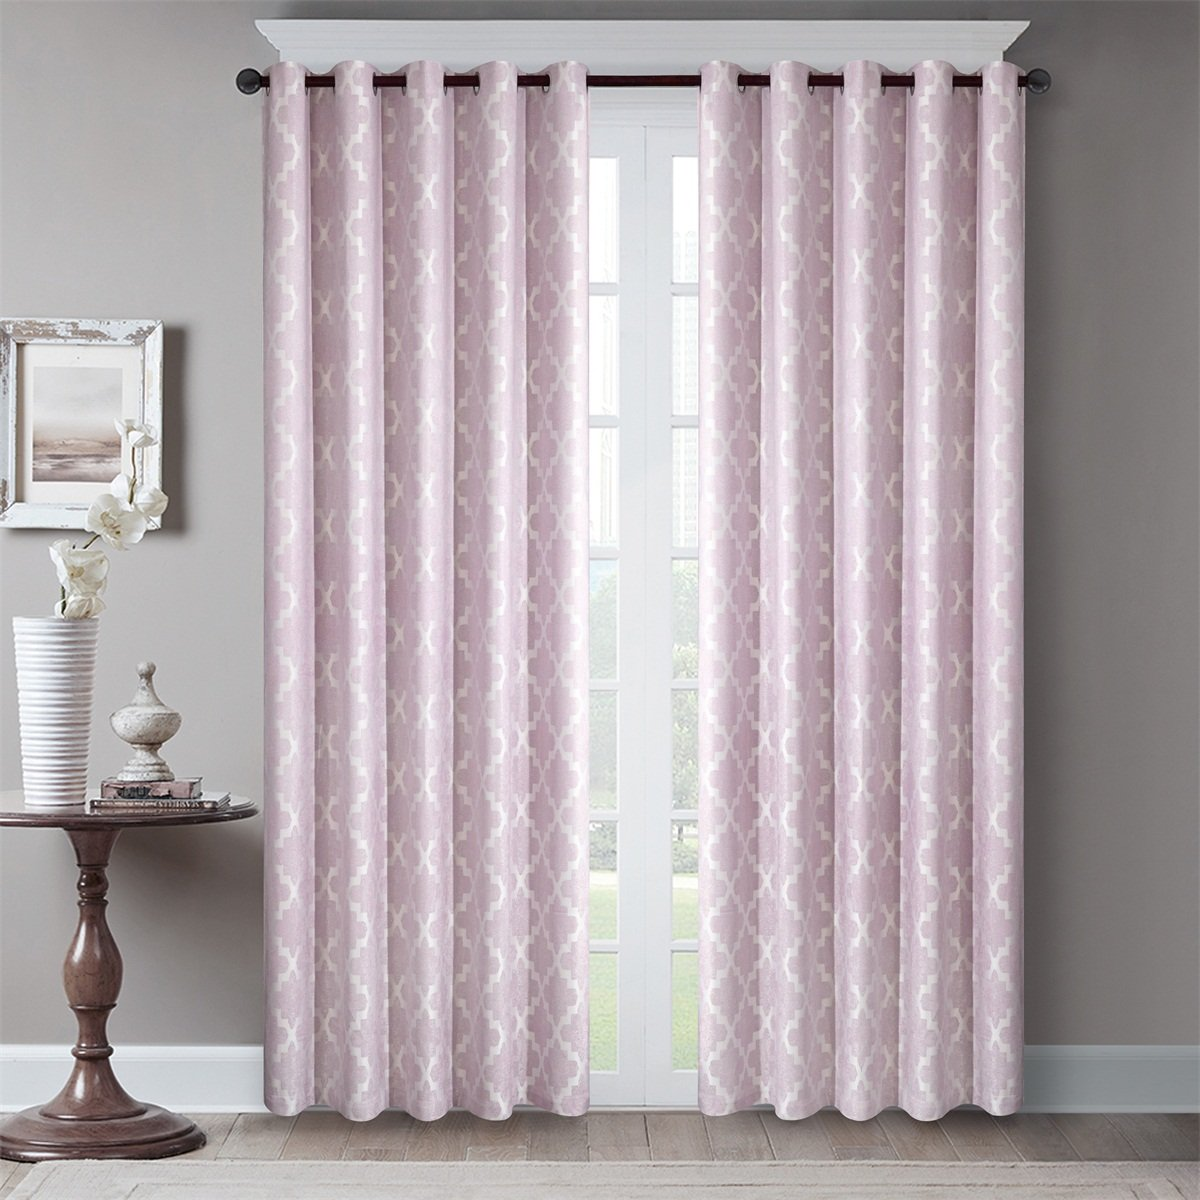 Dreaming Casa Room Darkening Grommet Top Window Treatment 96 Inches Long Printed Blackout Curtains Draperies for Bedroom Living Room 2 Panels / Pink 72'' W x 96'' L